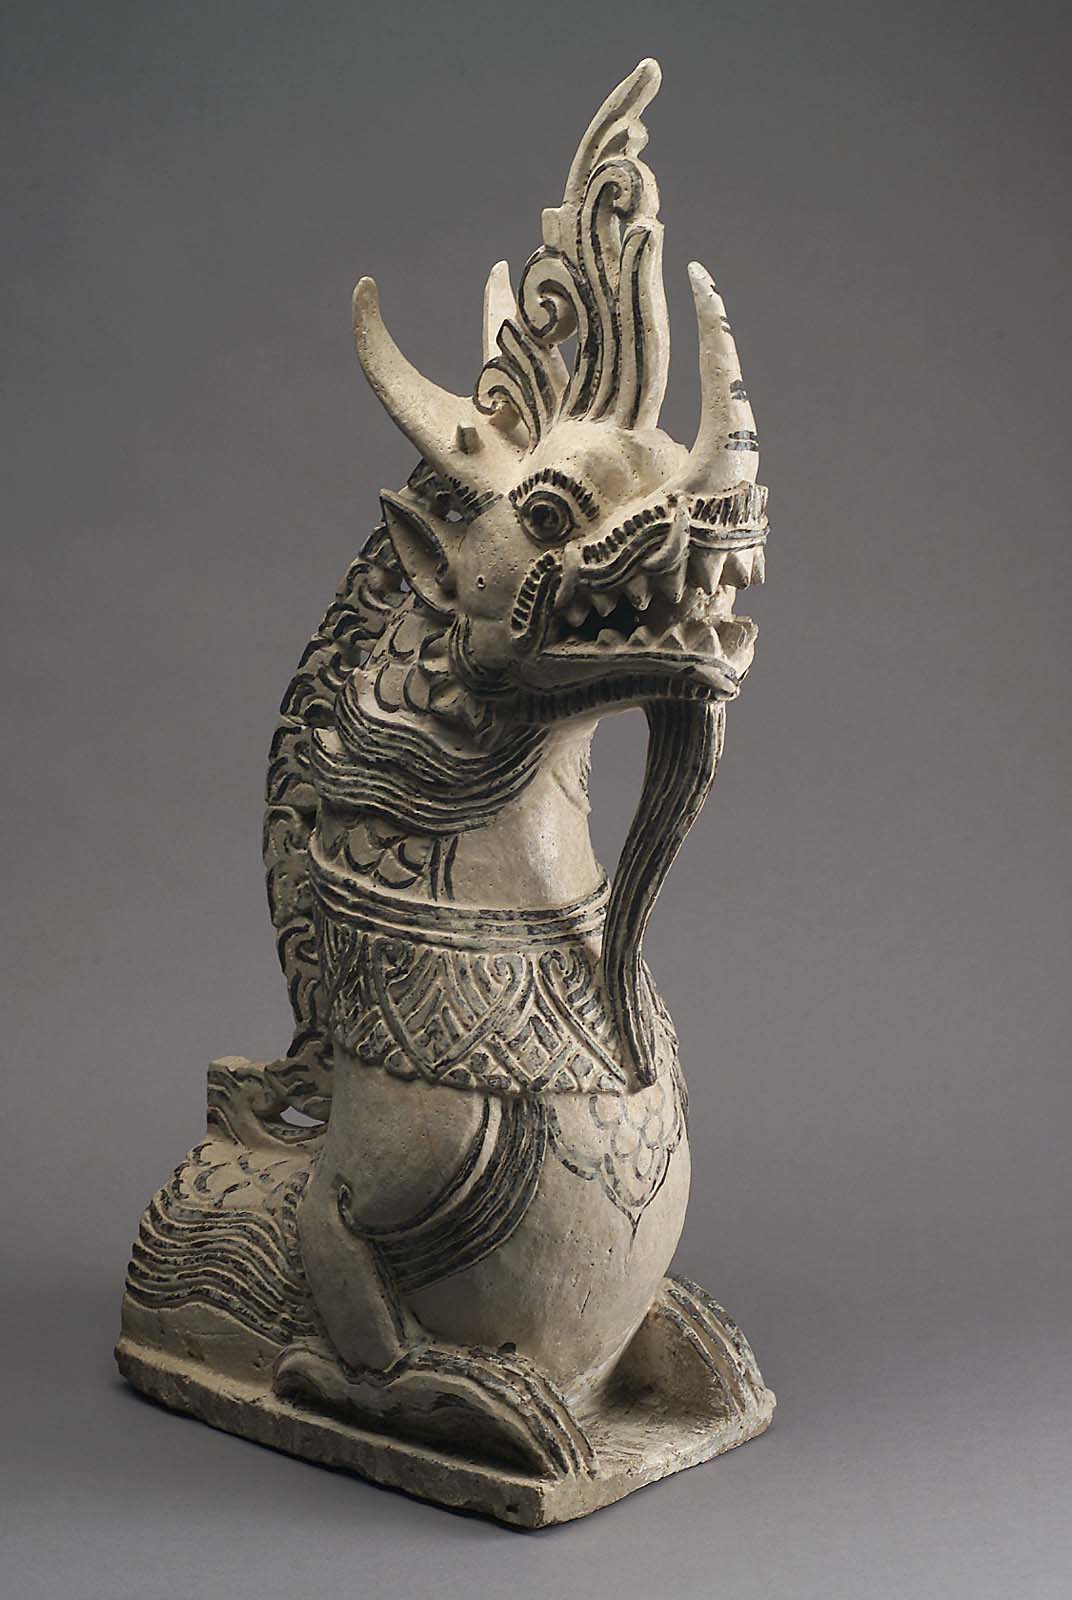 Roof Finial In The Shape Of A Mythological Creature